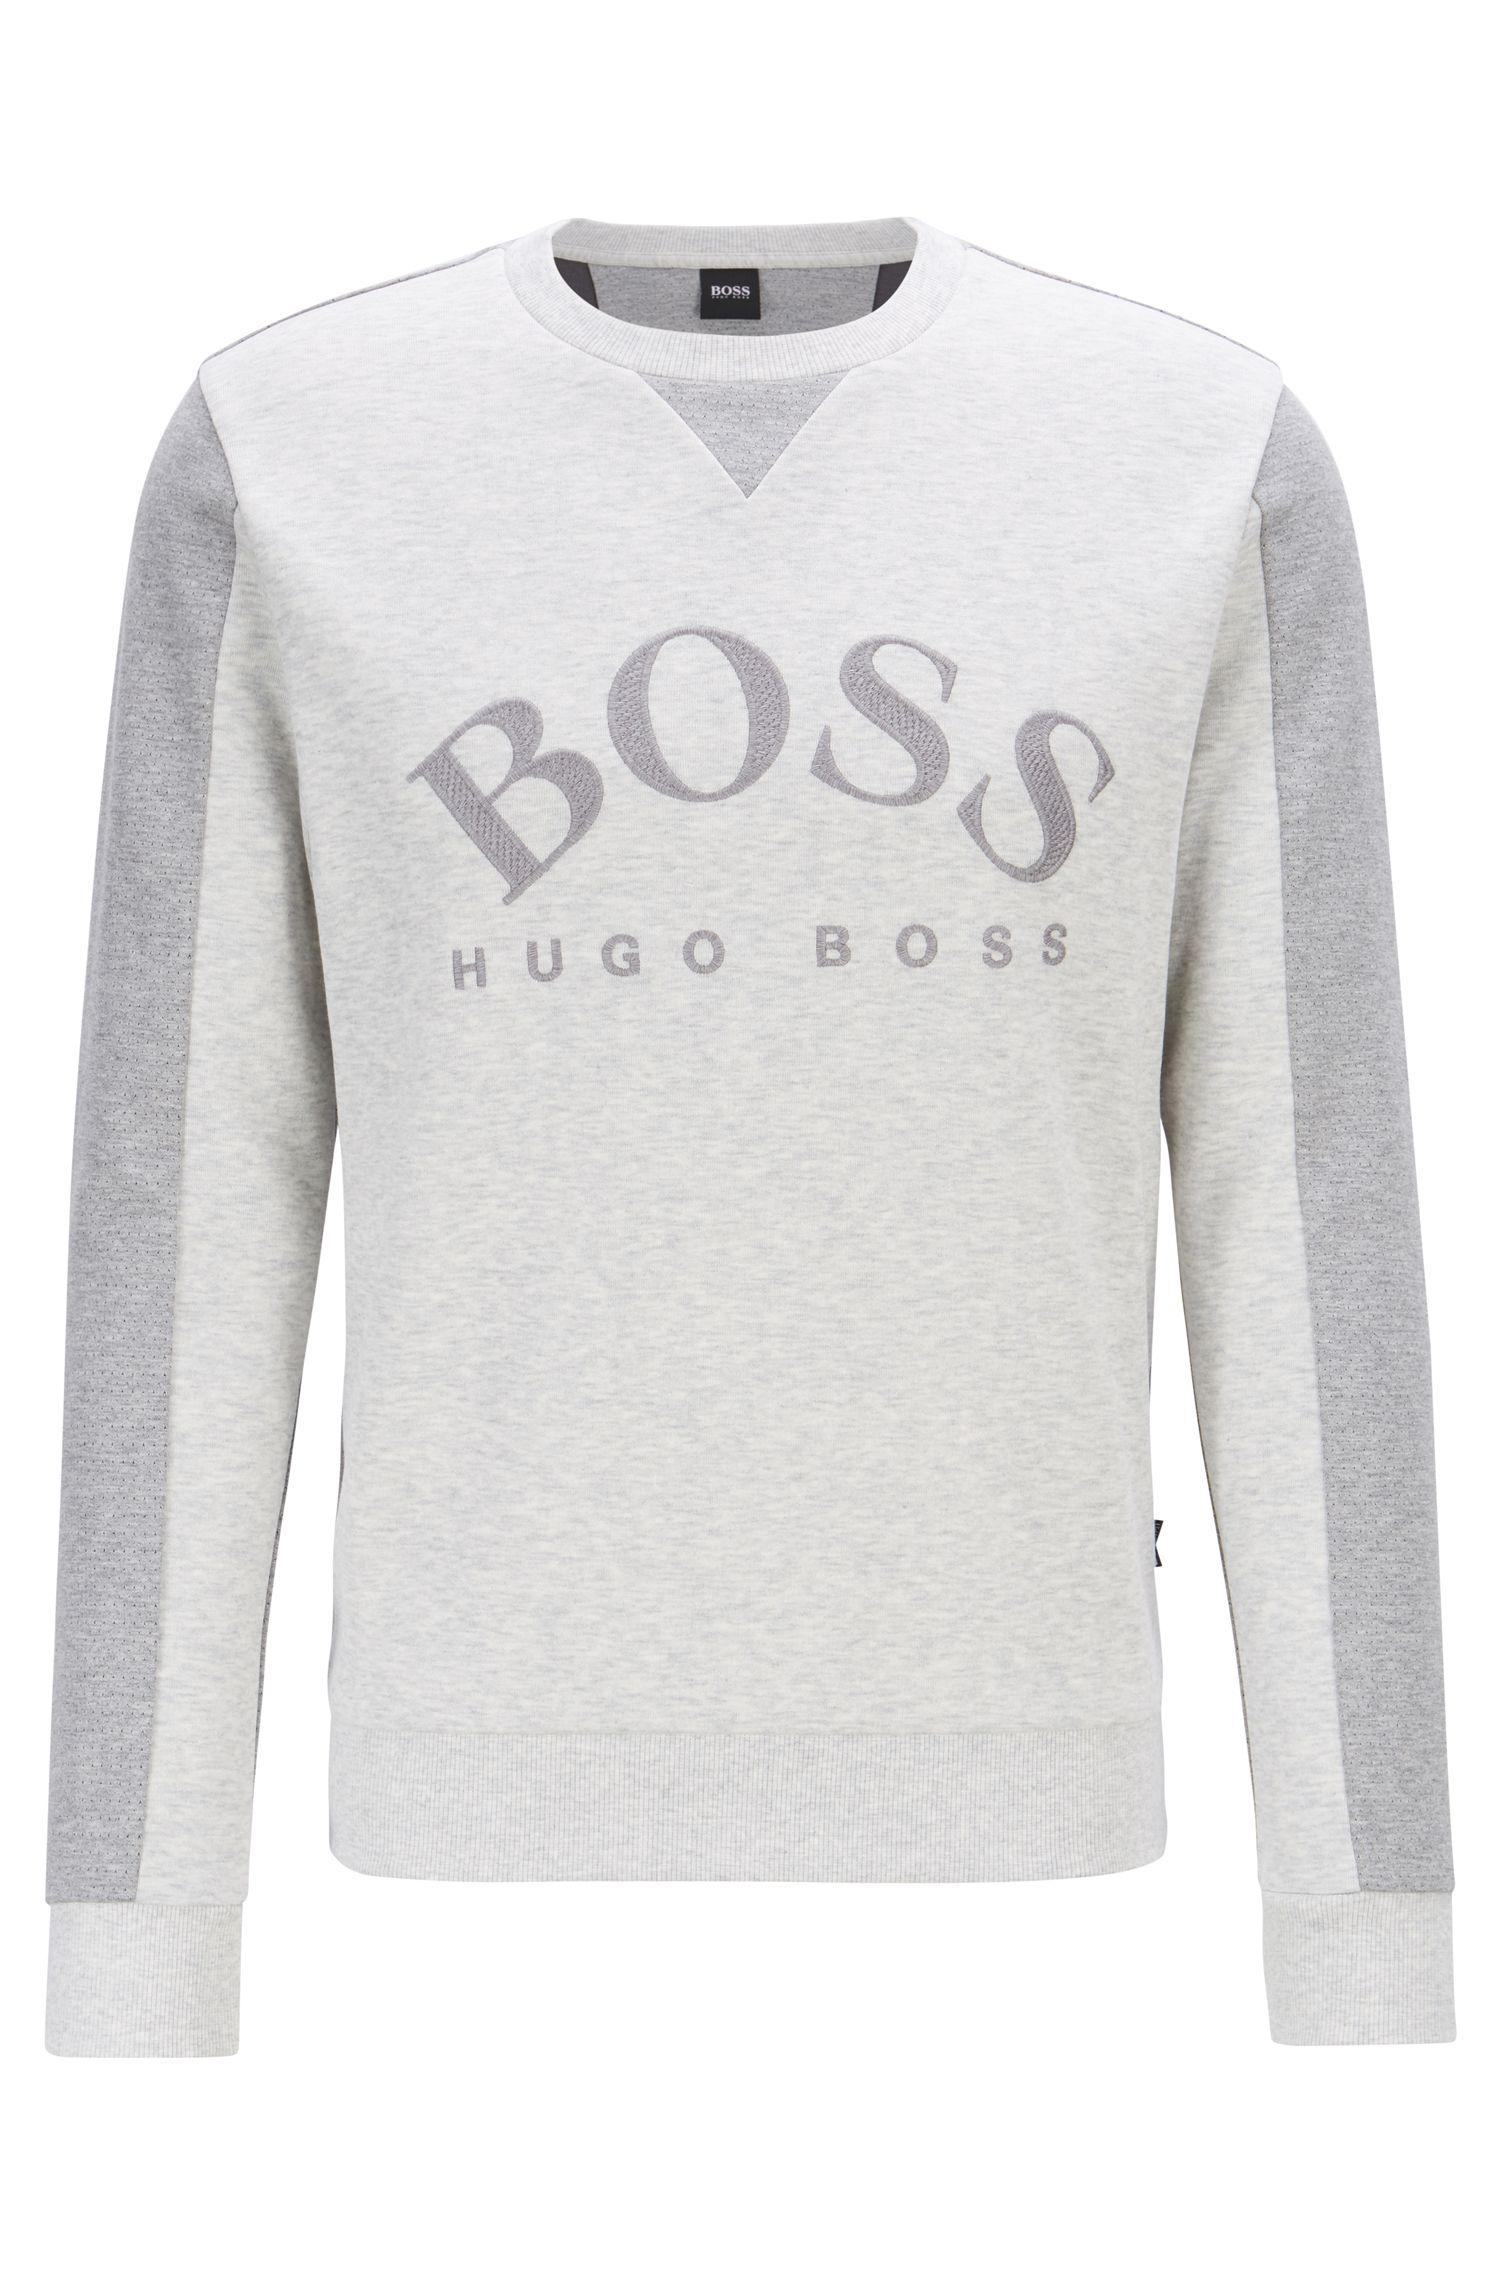 08cc0bd351 BOSS - Gray Mixed-material Slim-fit Sweatshirt With Curved Logo for Men -.  View fullscreen